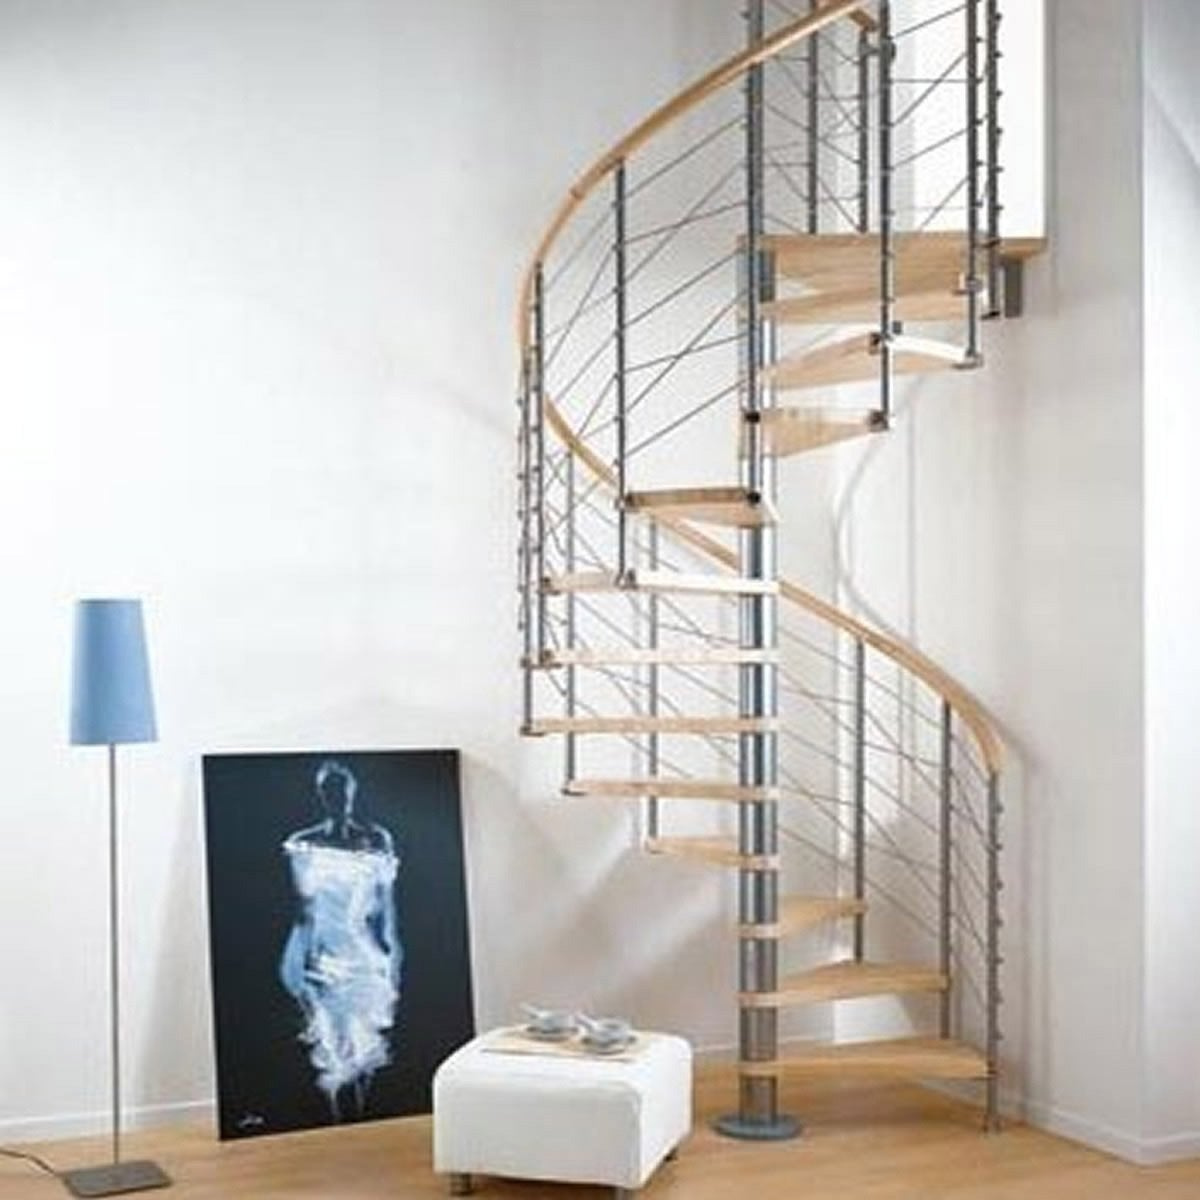 Escalier colima on rond ring structure m tal marche bois leroy merlin - Cancelletti per scale a chiocciola ...